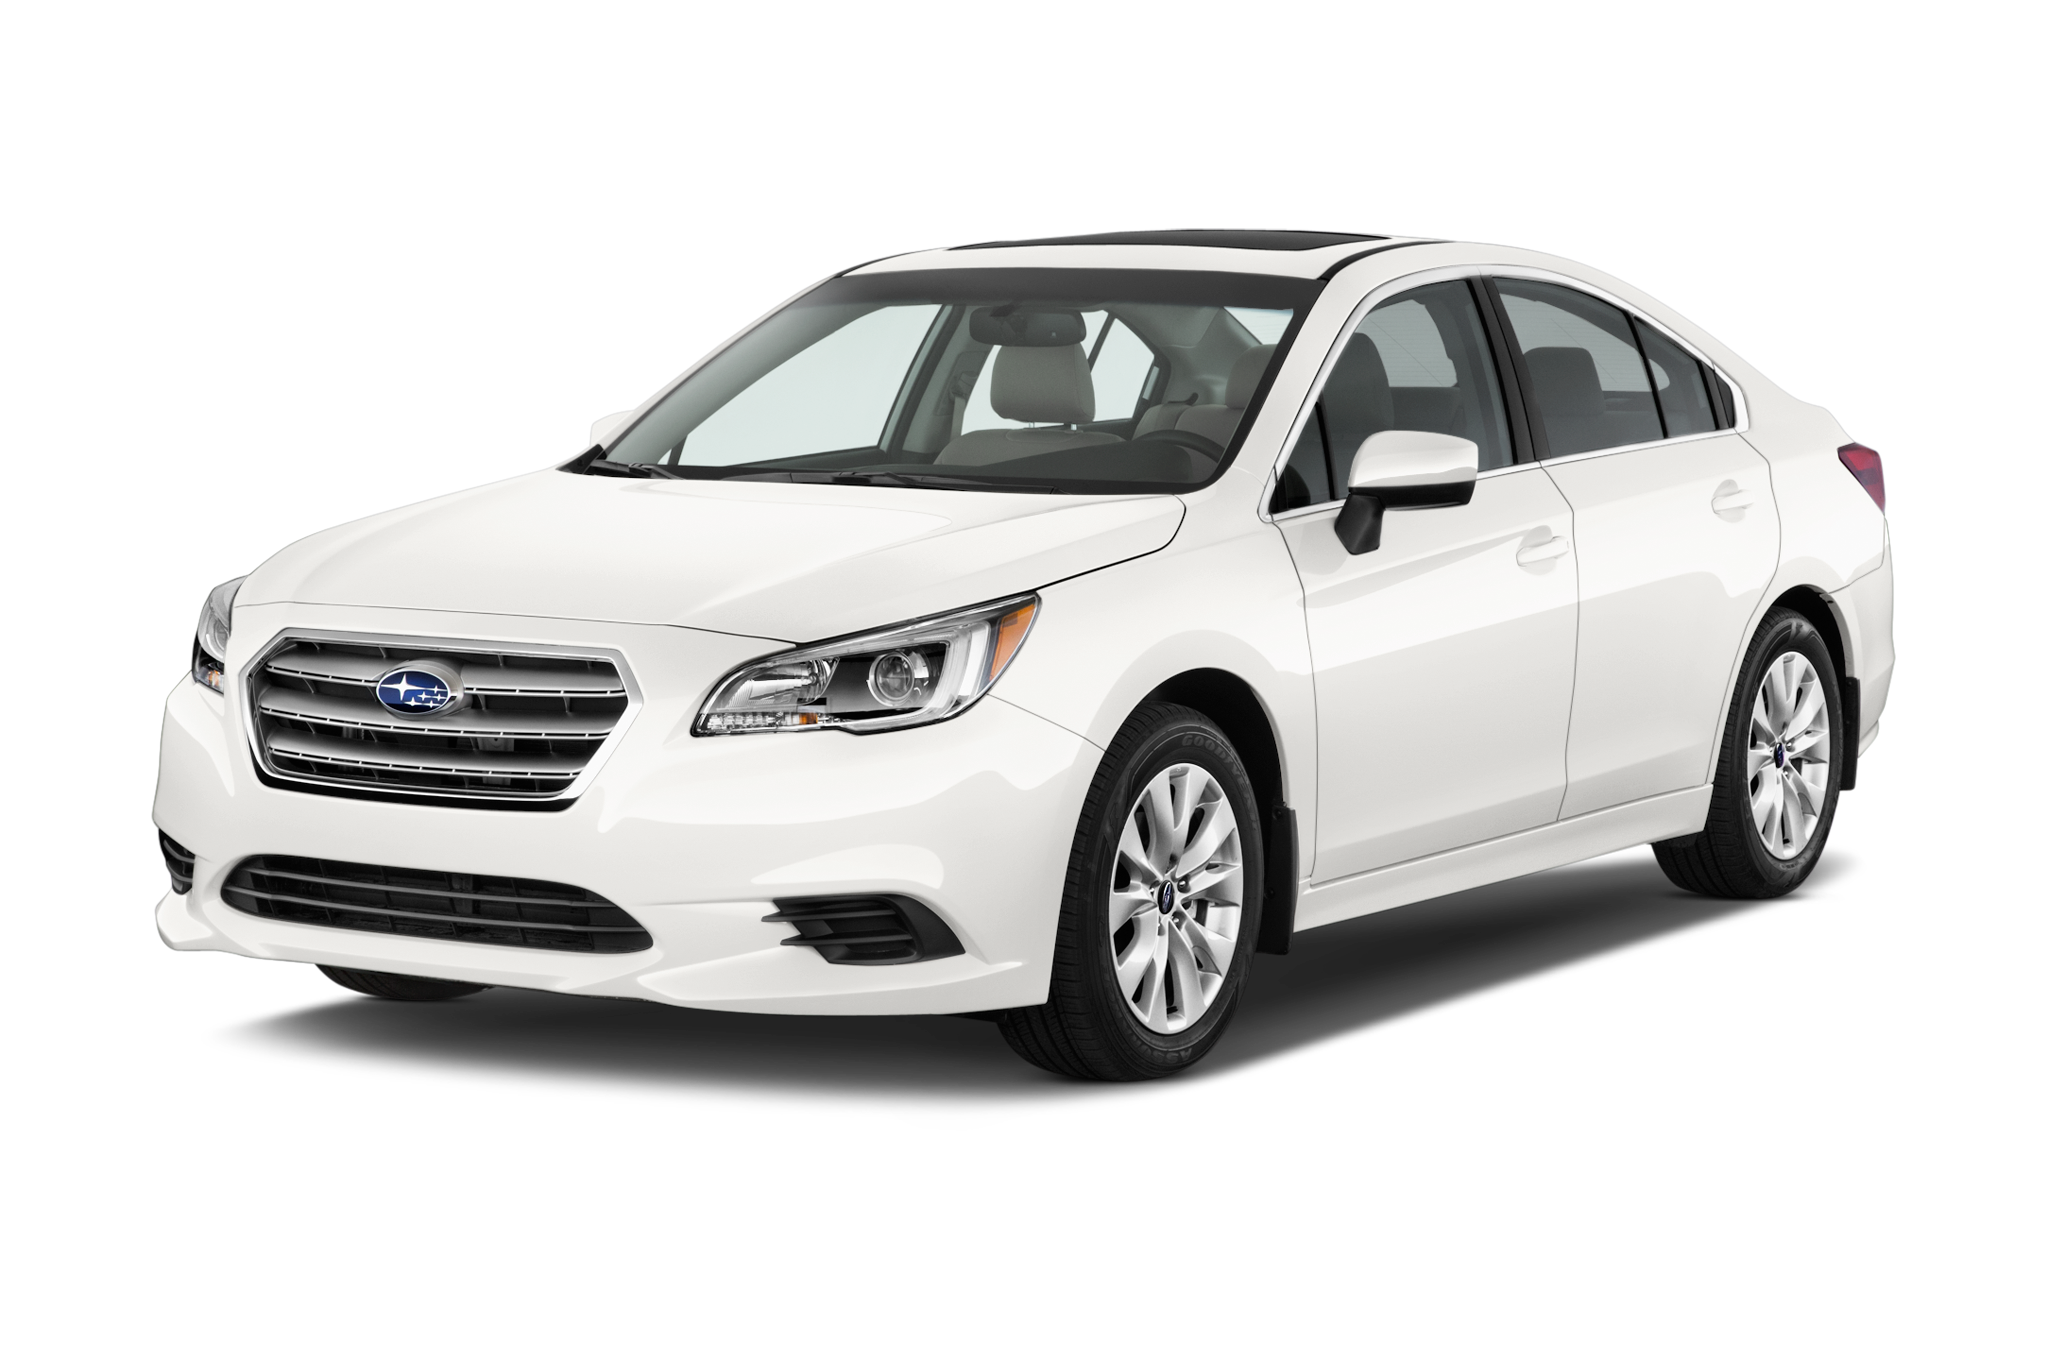 2016 Subaru Legacy Reviews and Rating